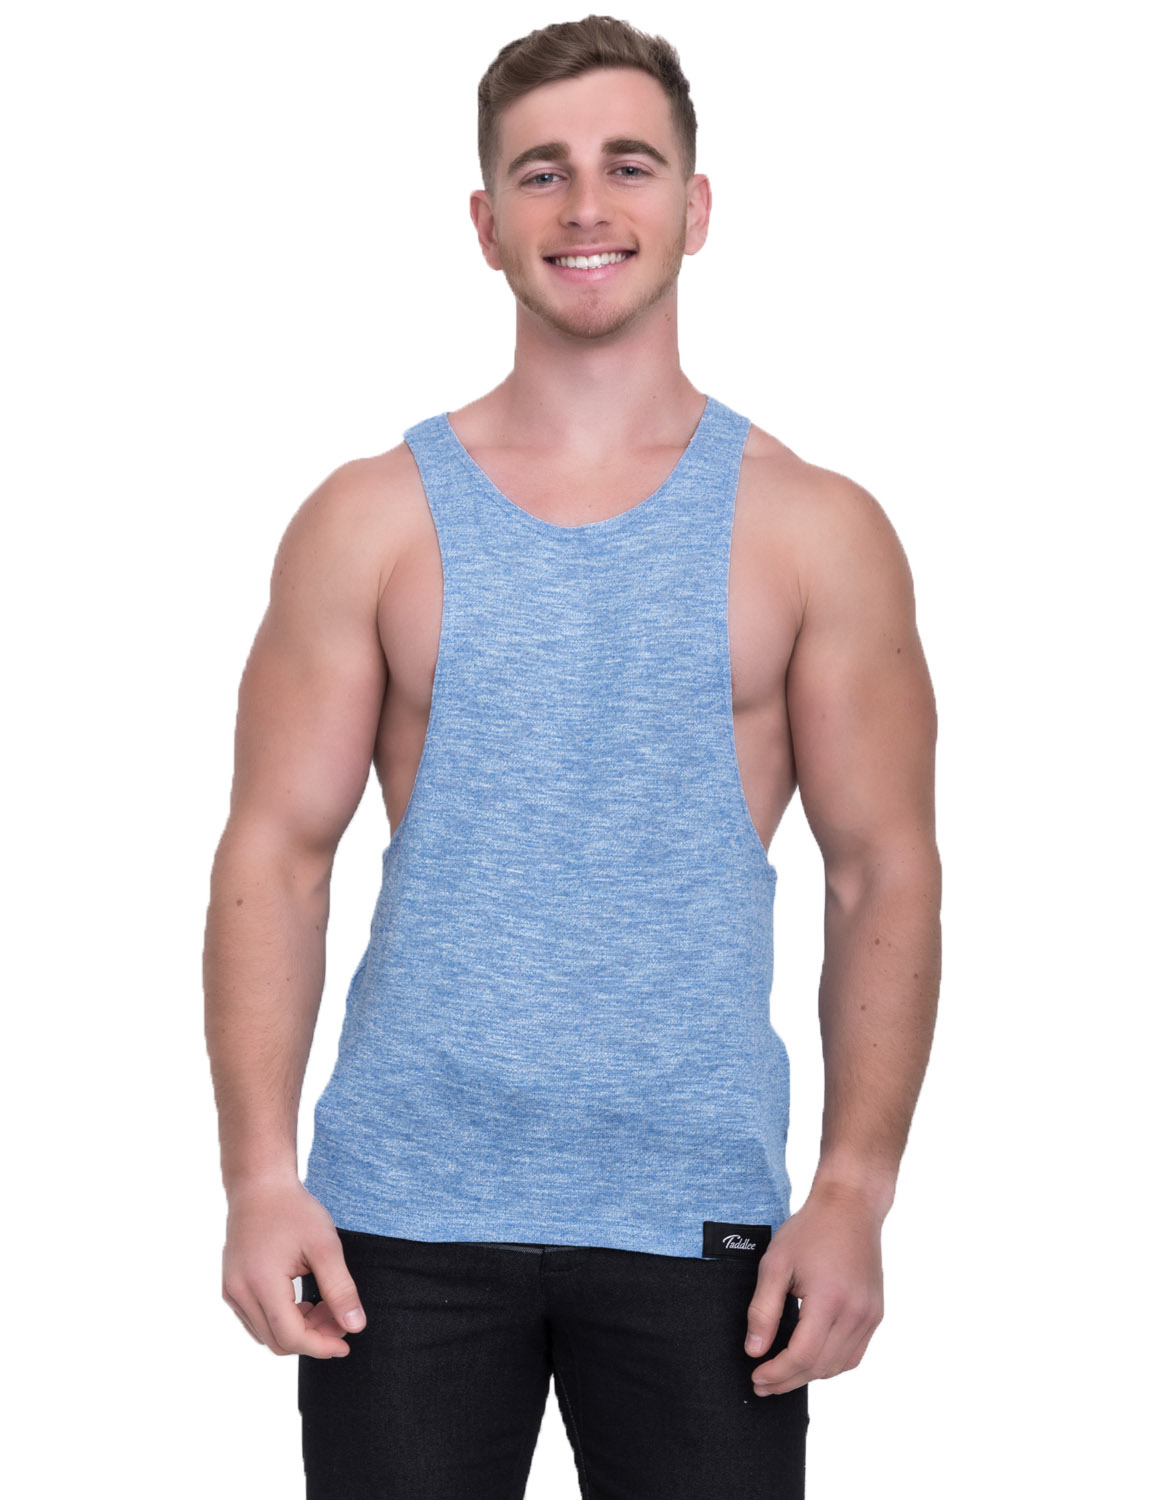 4b46fc41b17e43 Men Tank Top Tees Shirts T shirt Sleeveless Cotton Casual Stringer Singlets  Fitness Bodybuilding Undershirt Muscle